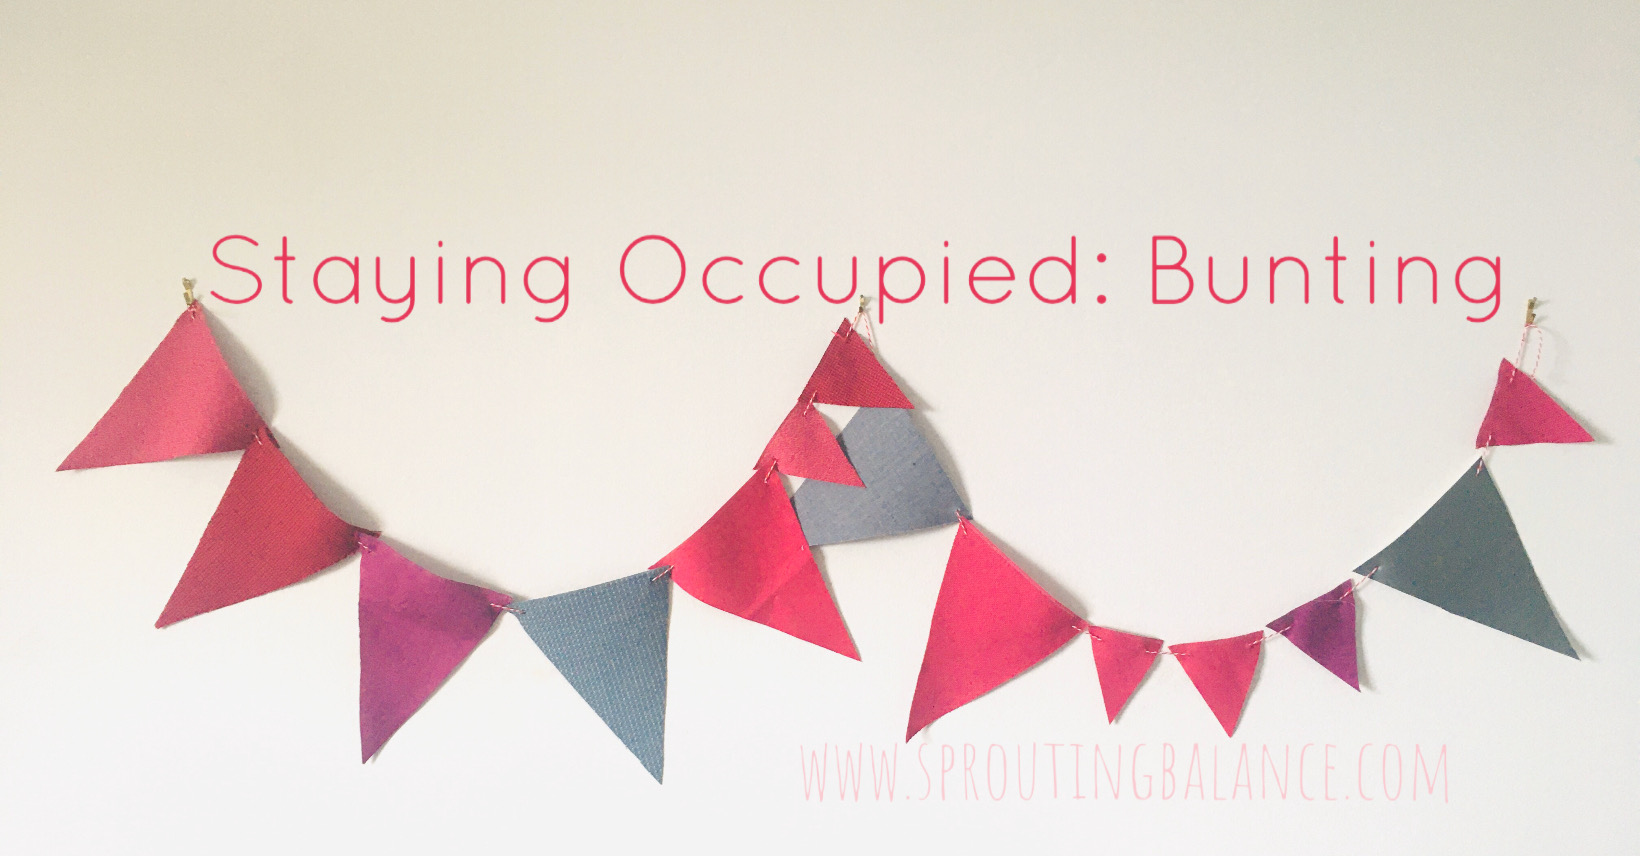 Staying Occupied: Bunting | www.sproutingbalance.com | #stayhome #socialdistancing #bepositive